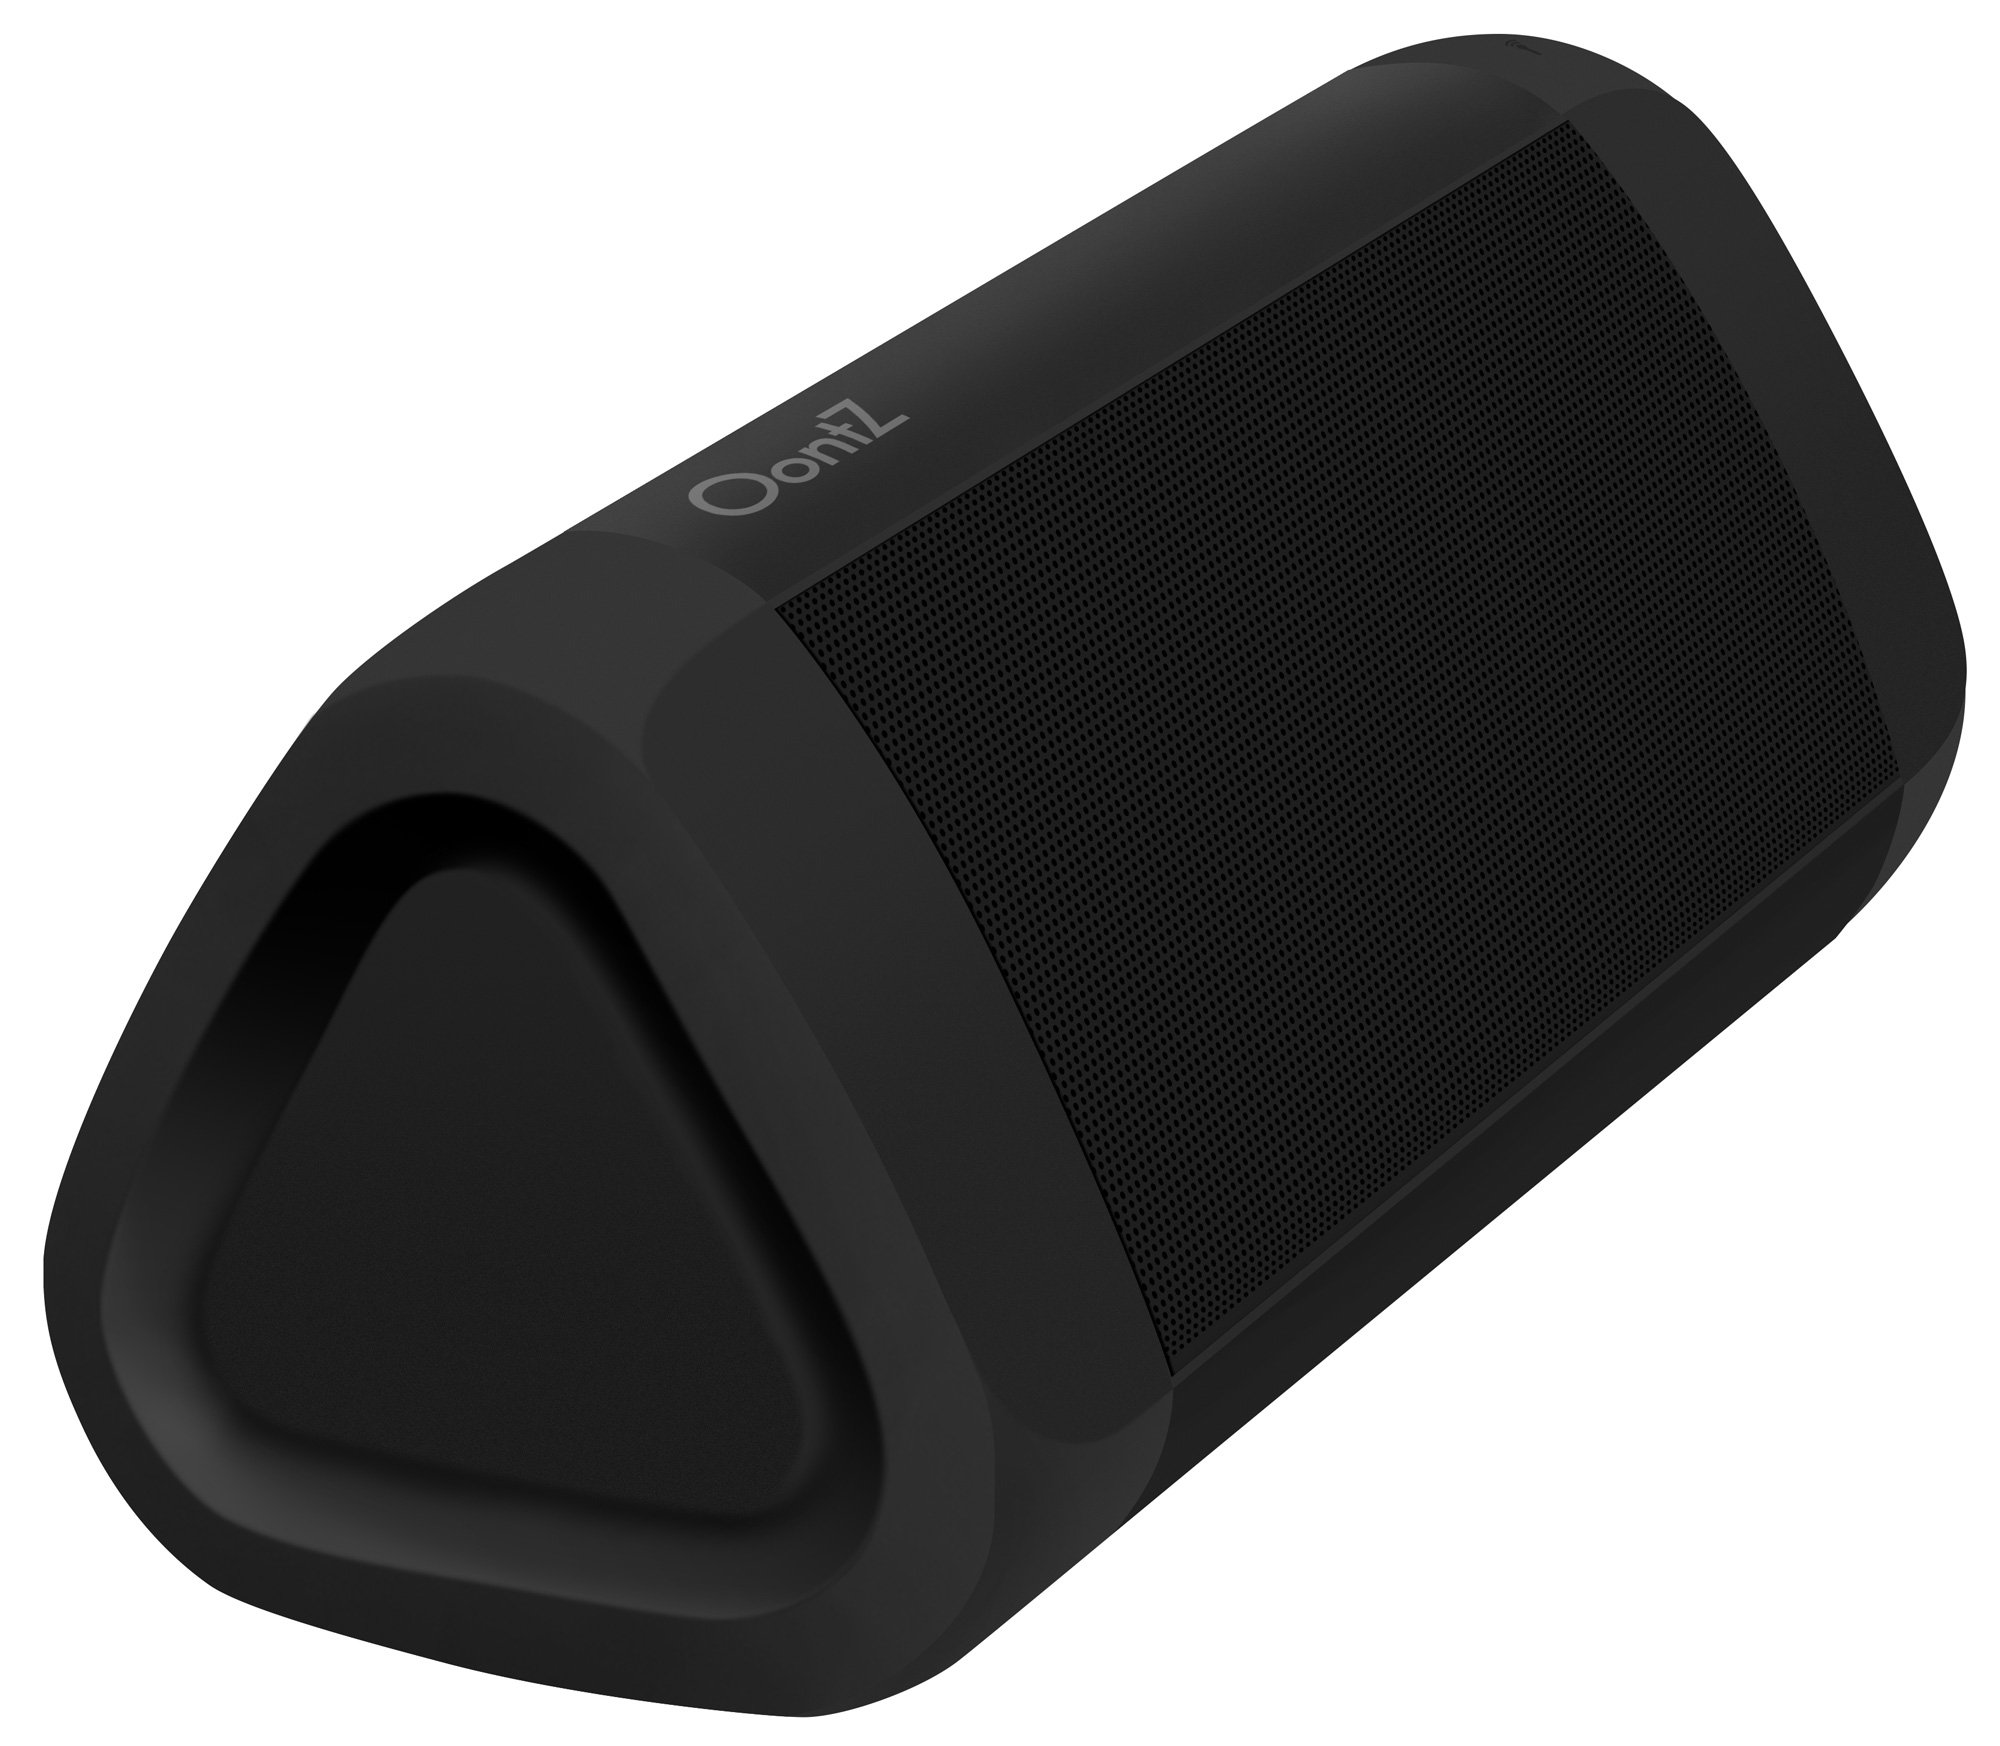 OontZ Angle 3 PLUS - Portable Bluetooth Speaker, Superior Stereo Sound, 10+ Watts for Louder Volume, Richer Bass, IPX5, Incredible 30 Hour Battery Playtime, Bluetooth Speakers by Cambridge SoundWorks by Cambridge Soundworks